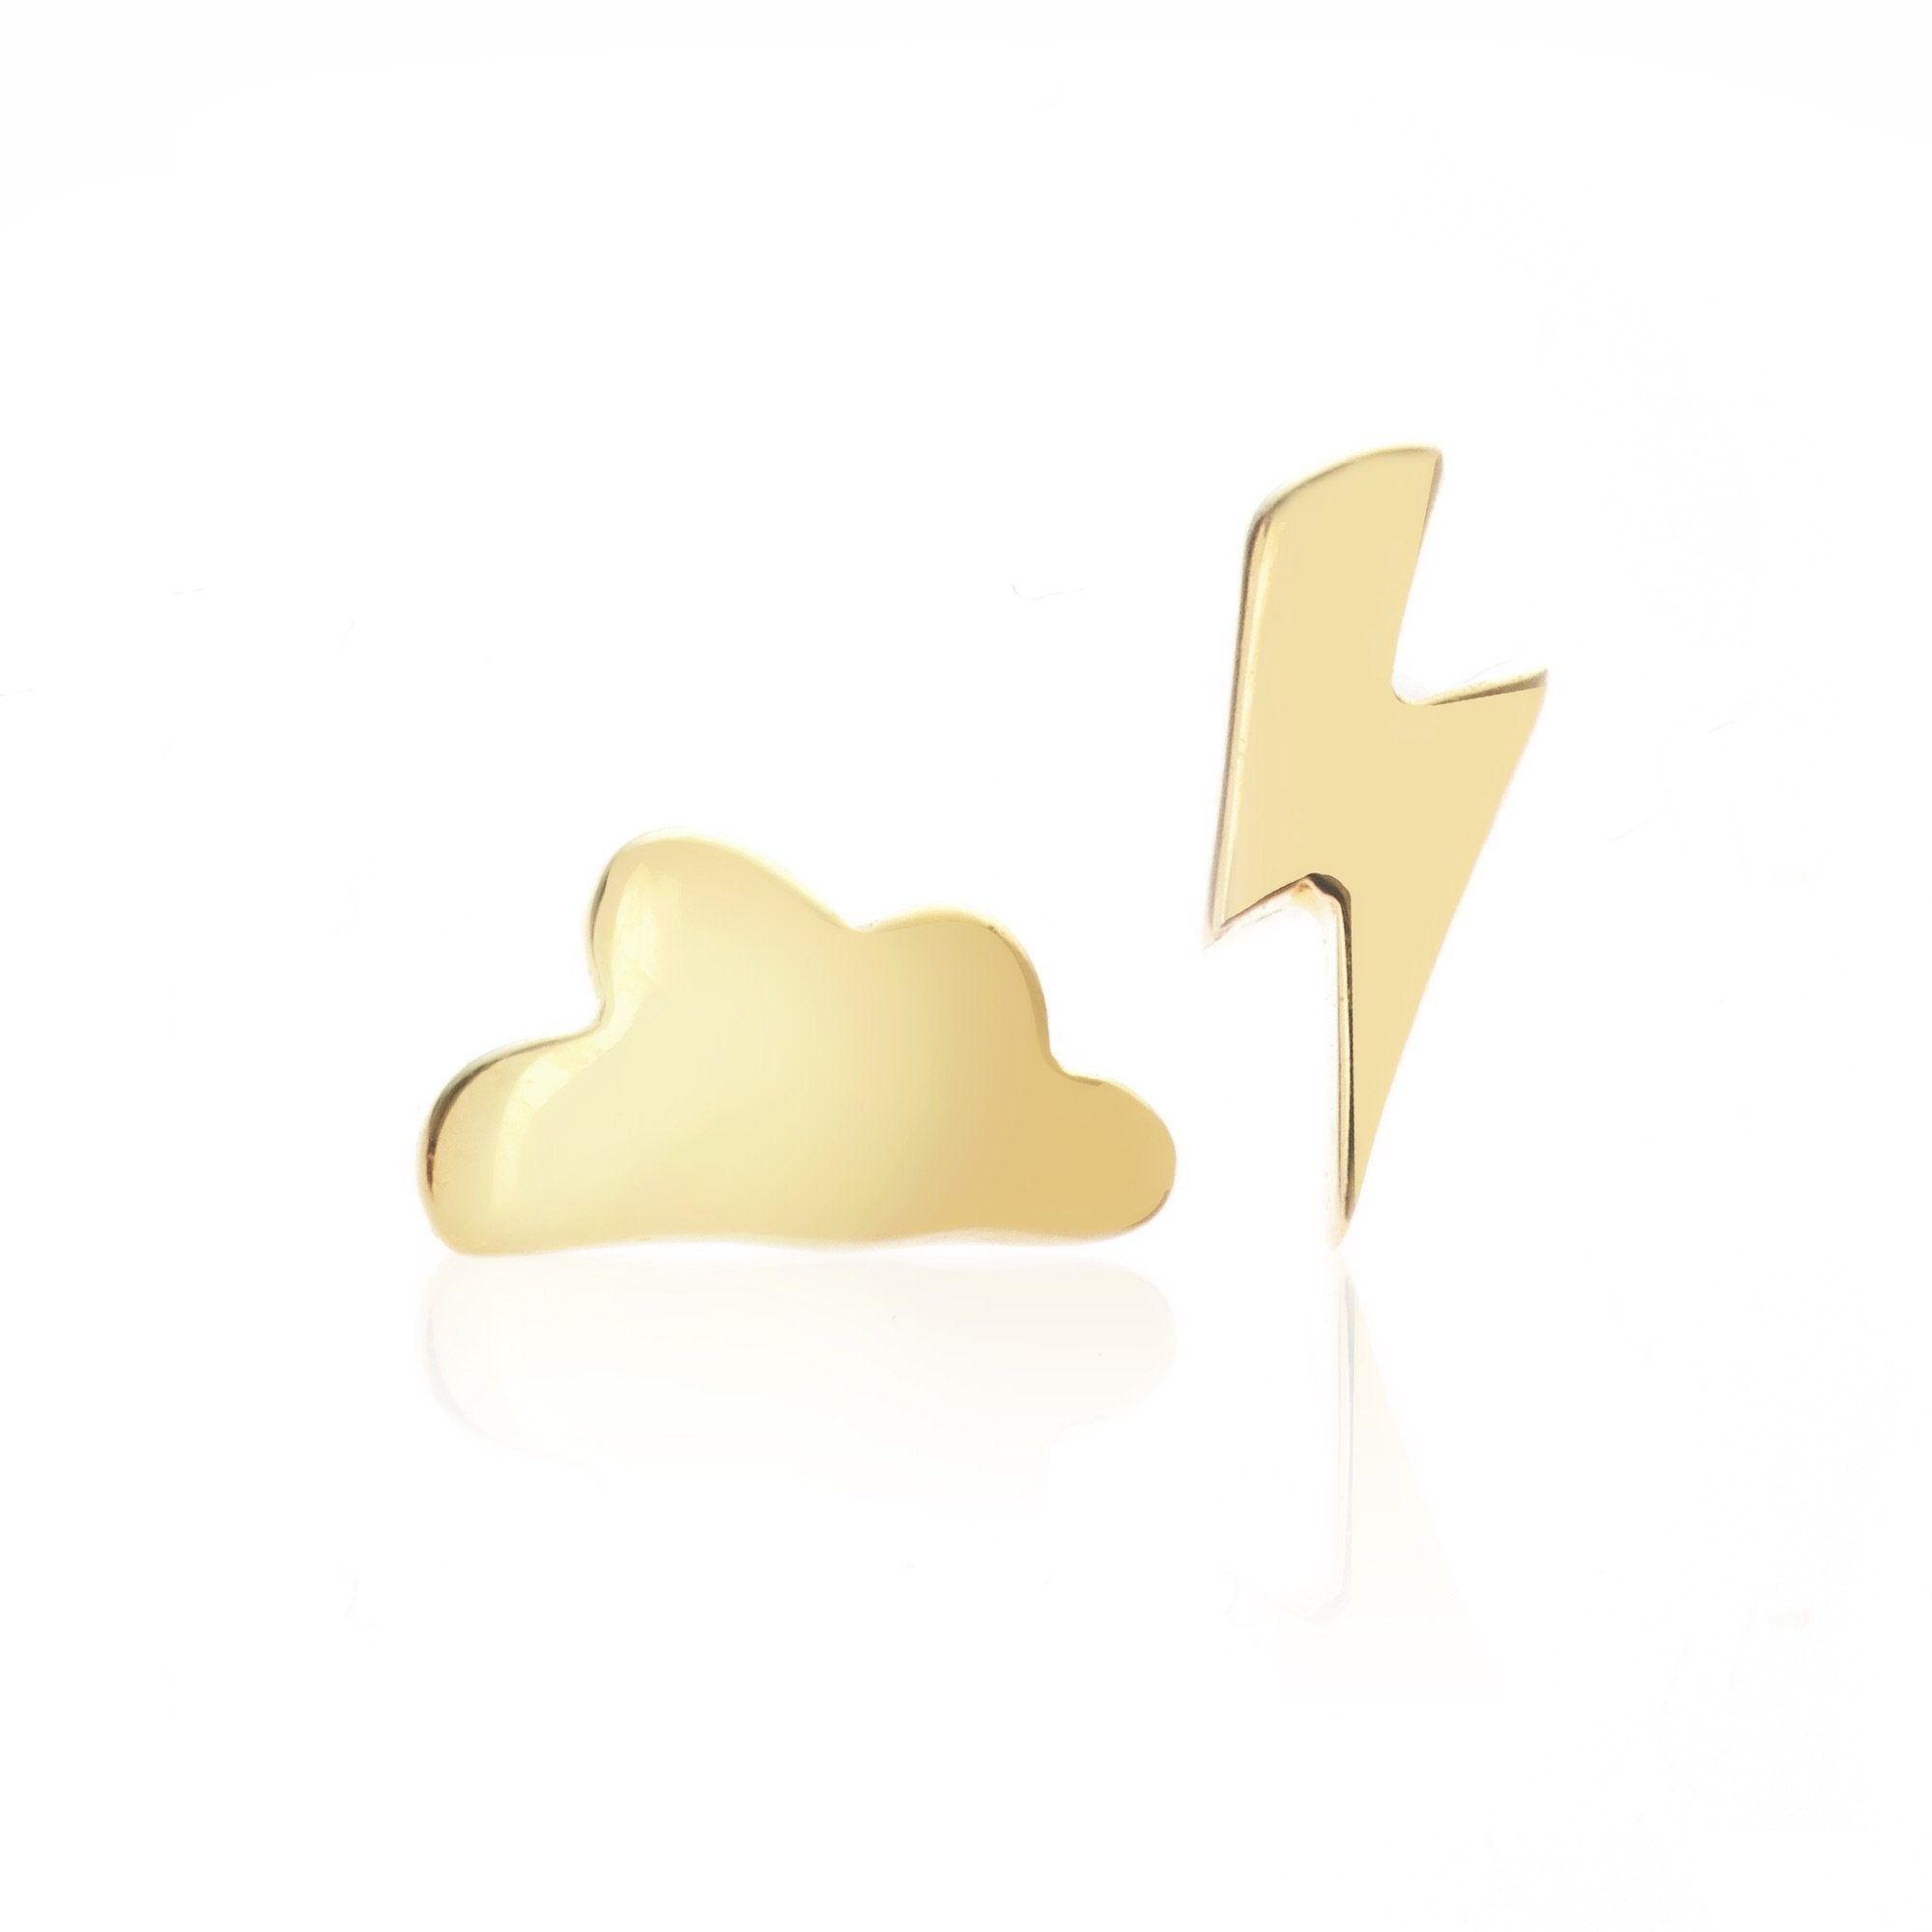 Silk & Steel Jewellery Superfine Gold Cloud and Bolt Sterling Silver Stud Earrings